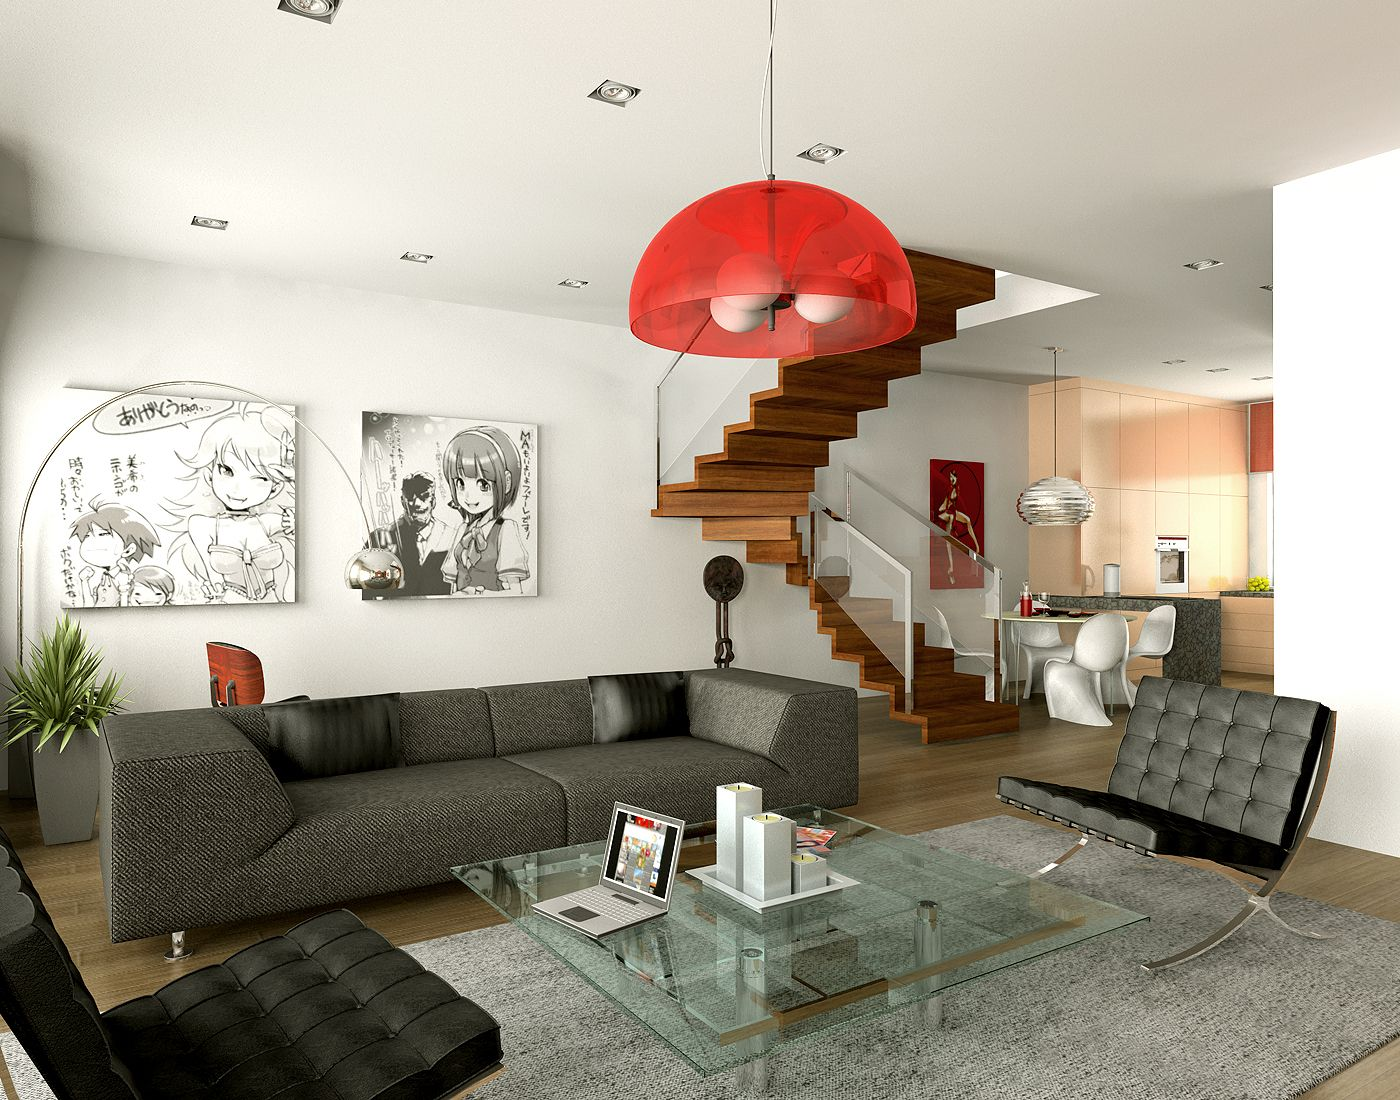 Hereu0027s A List Of 45 Red And White Living Room Designs To Help Get You  Inspired! Part 12